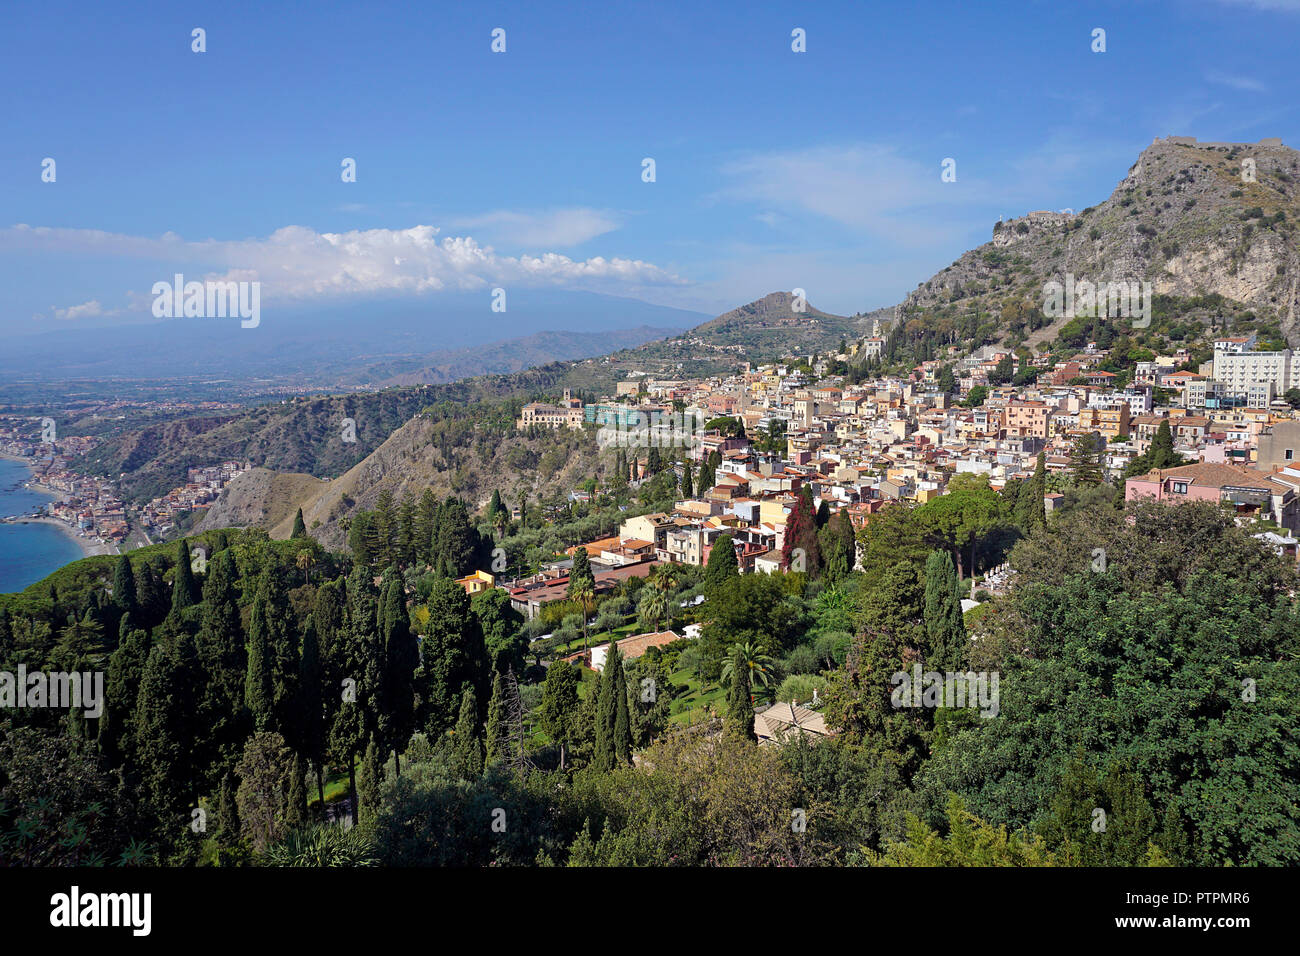 Splendid view from the ancient greek-roman theatre to Taormina, Sicily, Italy Stock Photo